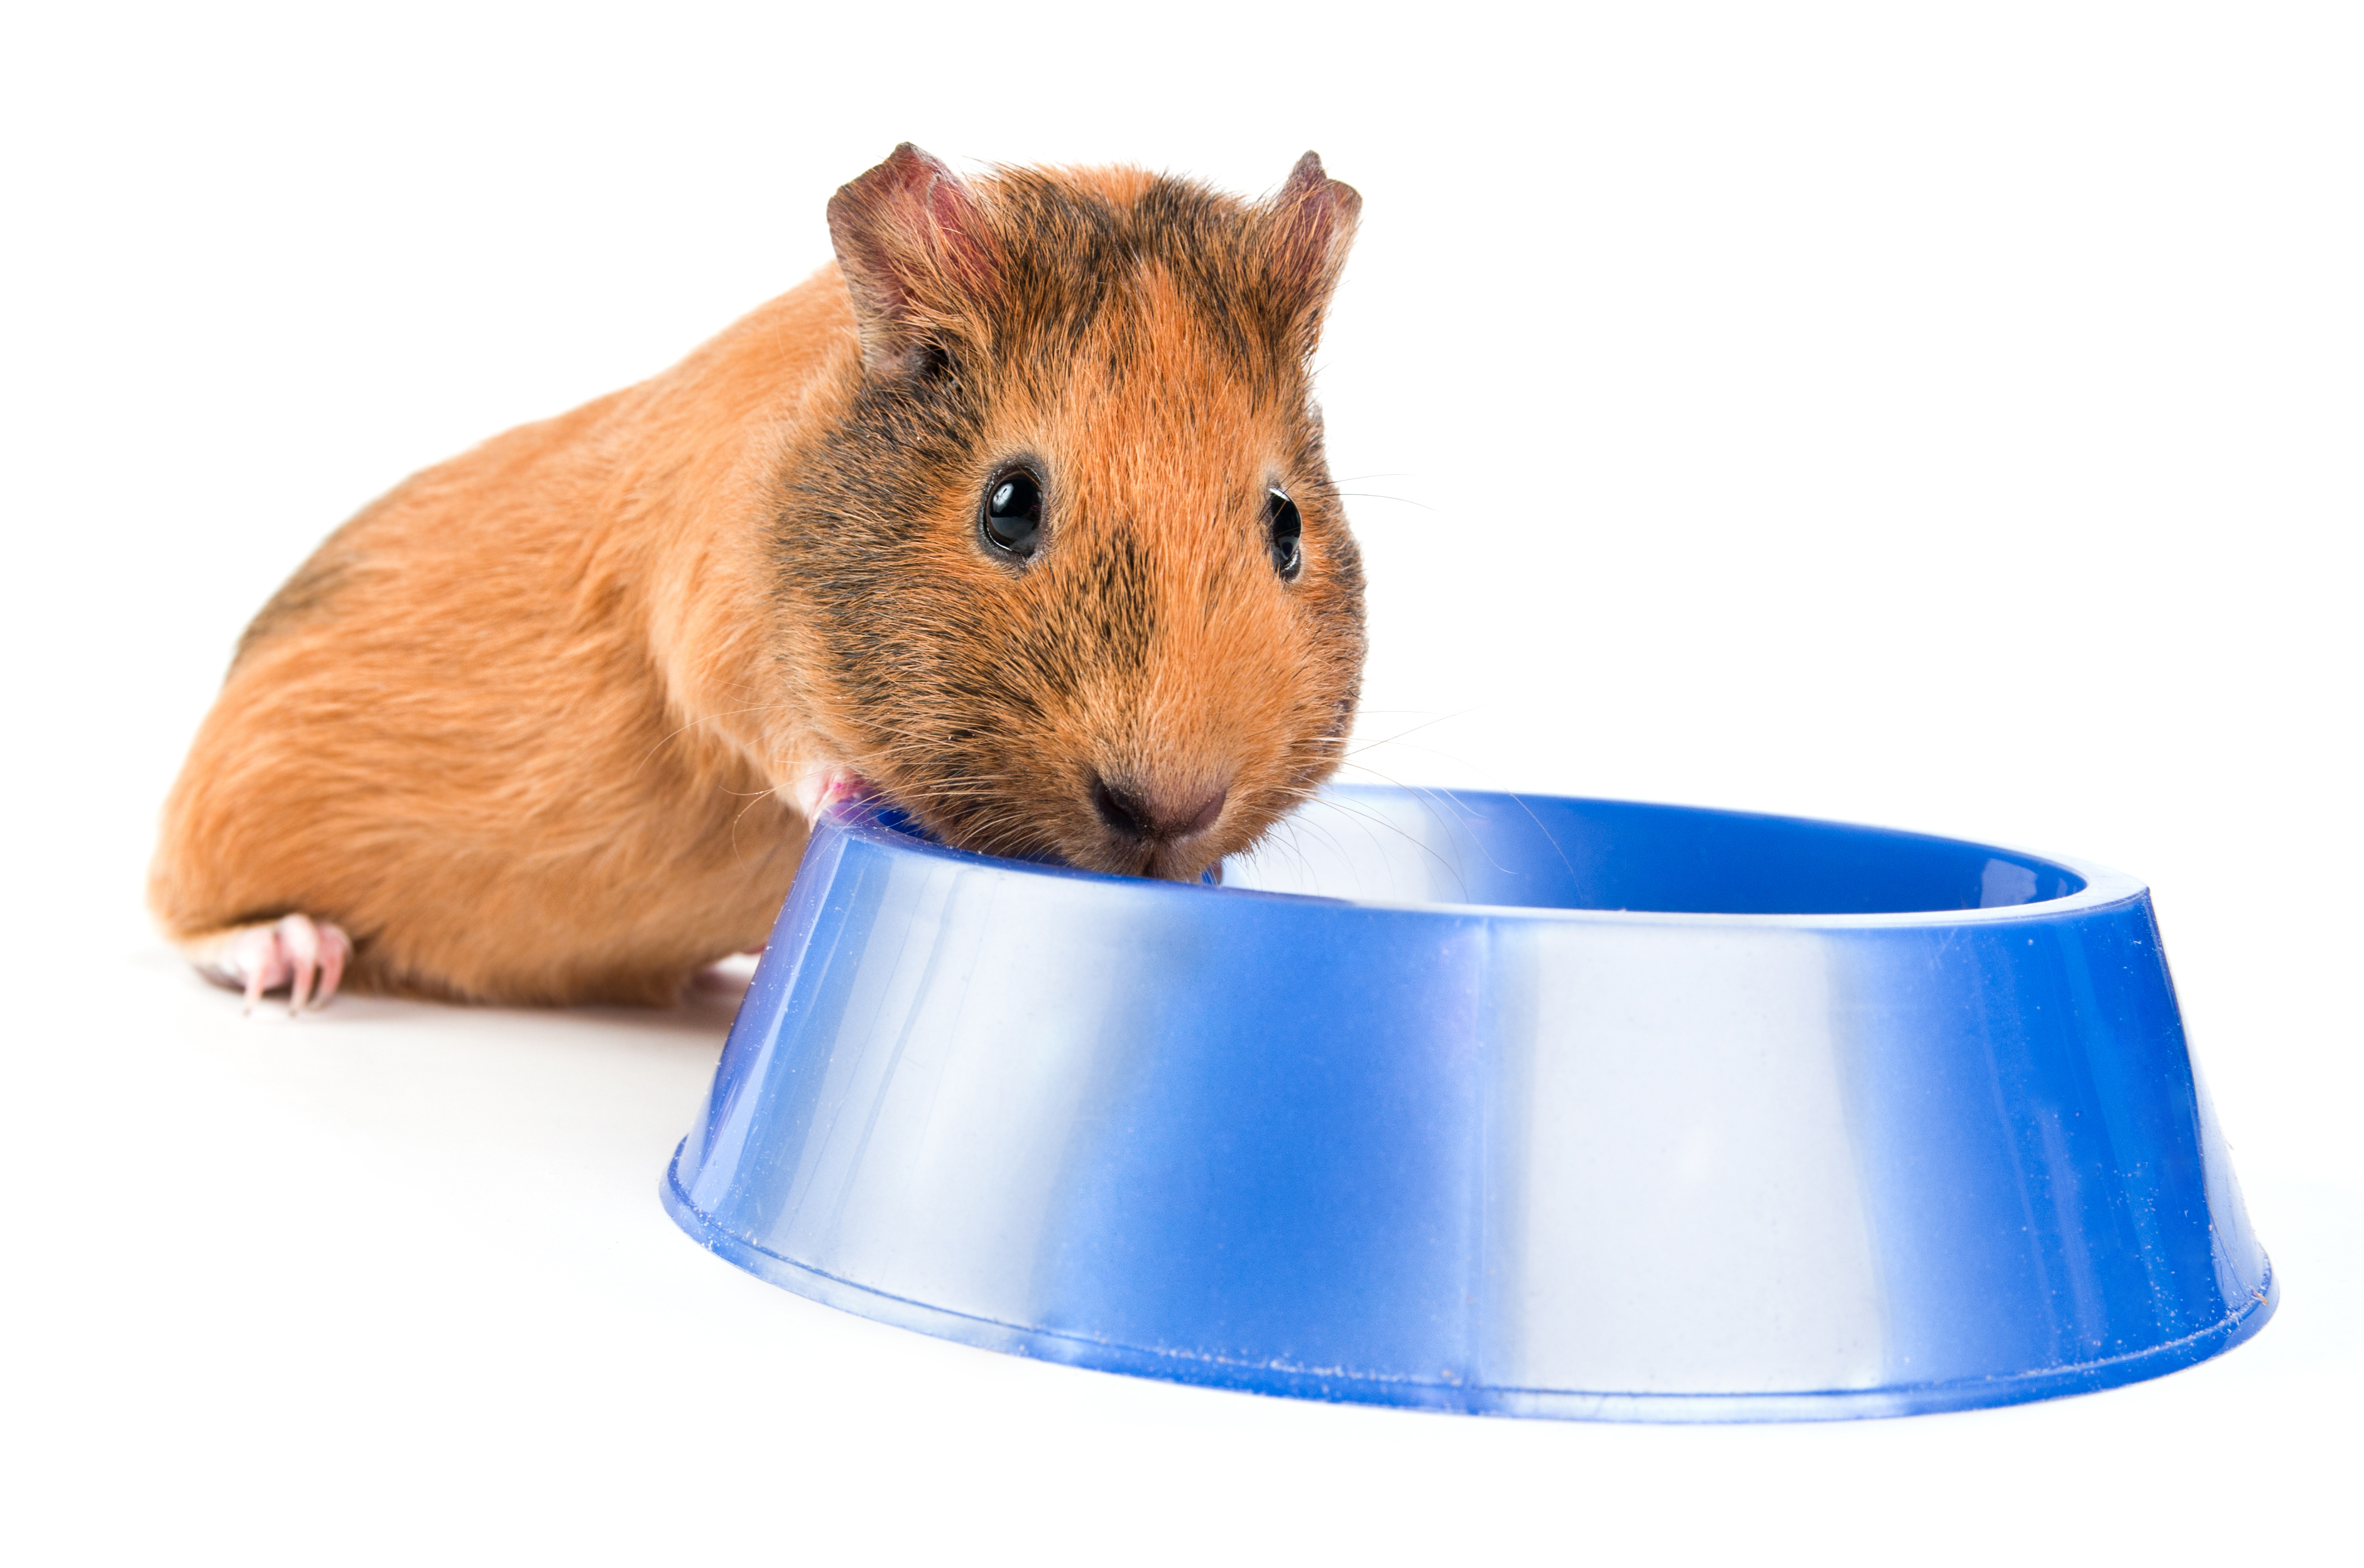 guinea pig drinking from bowl